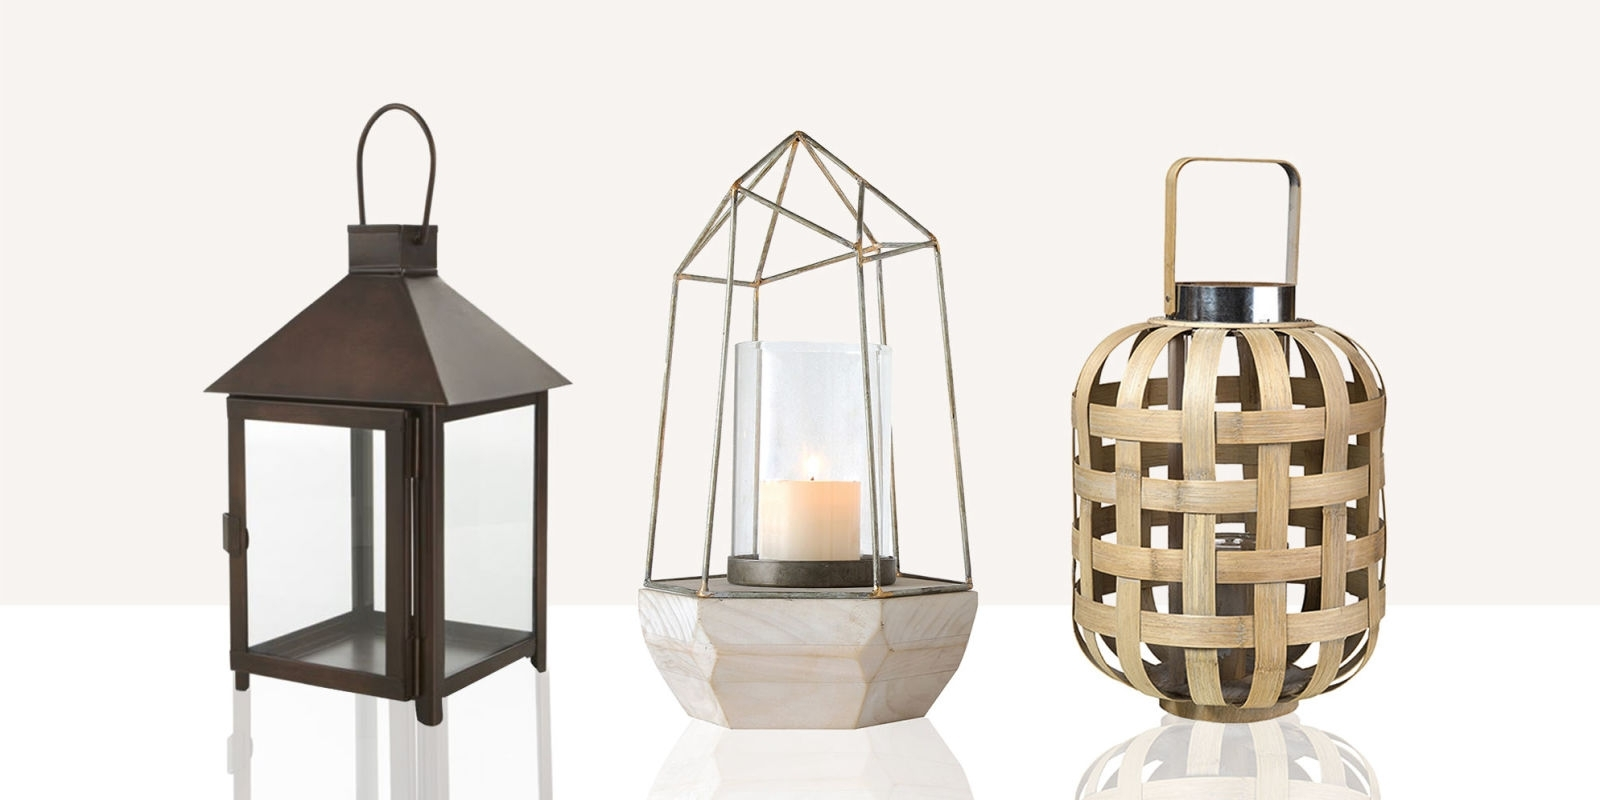 Preferred Lighting: Brighten Up Your Space With Stunning Candle Lanterns With Outdoor Lanterns With Timers (View 20 of 20)